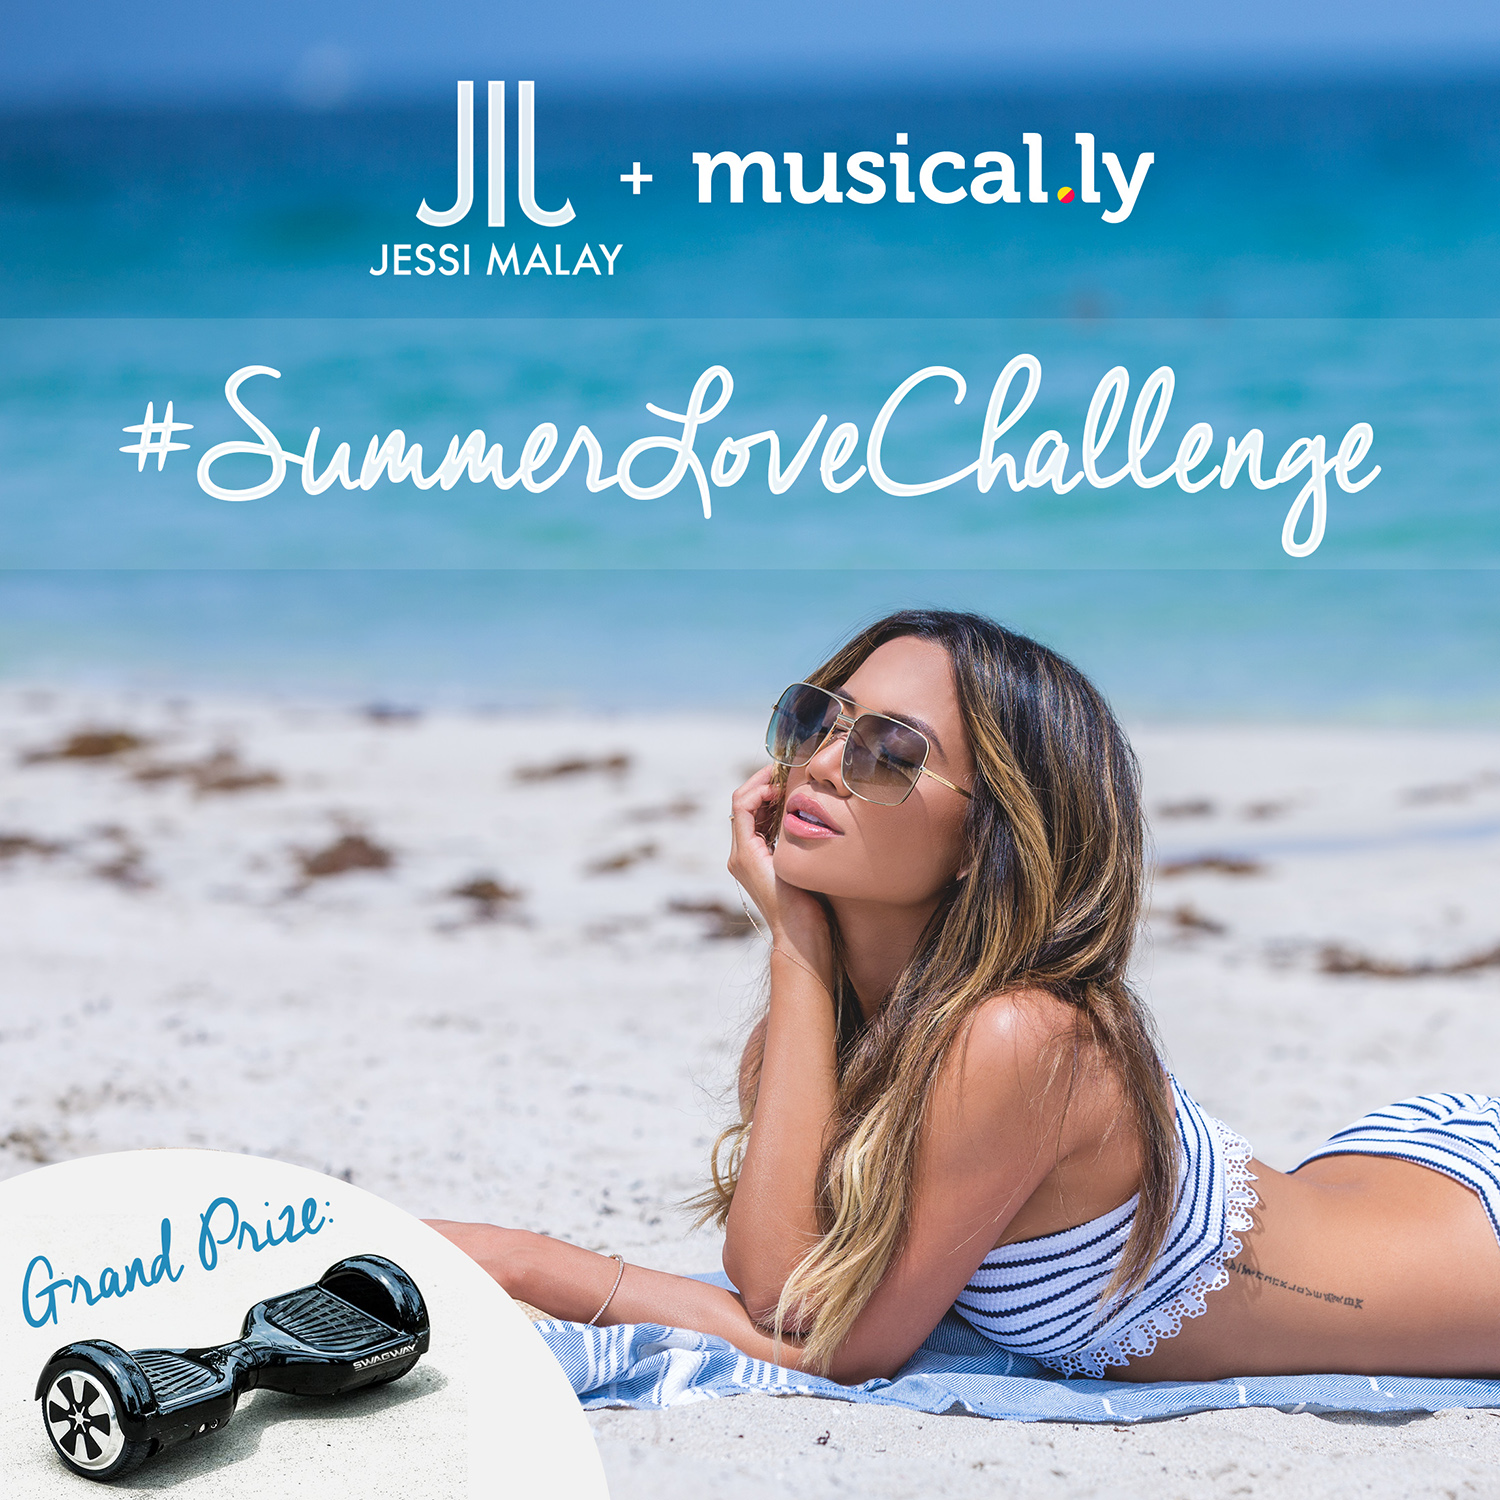 Jessi Malay musical.ly #SummerLoveChallenge